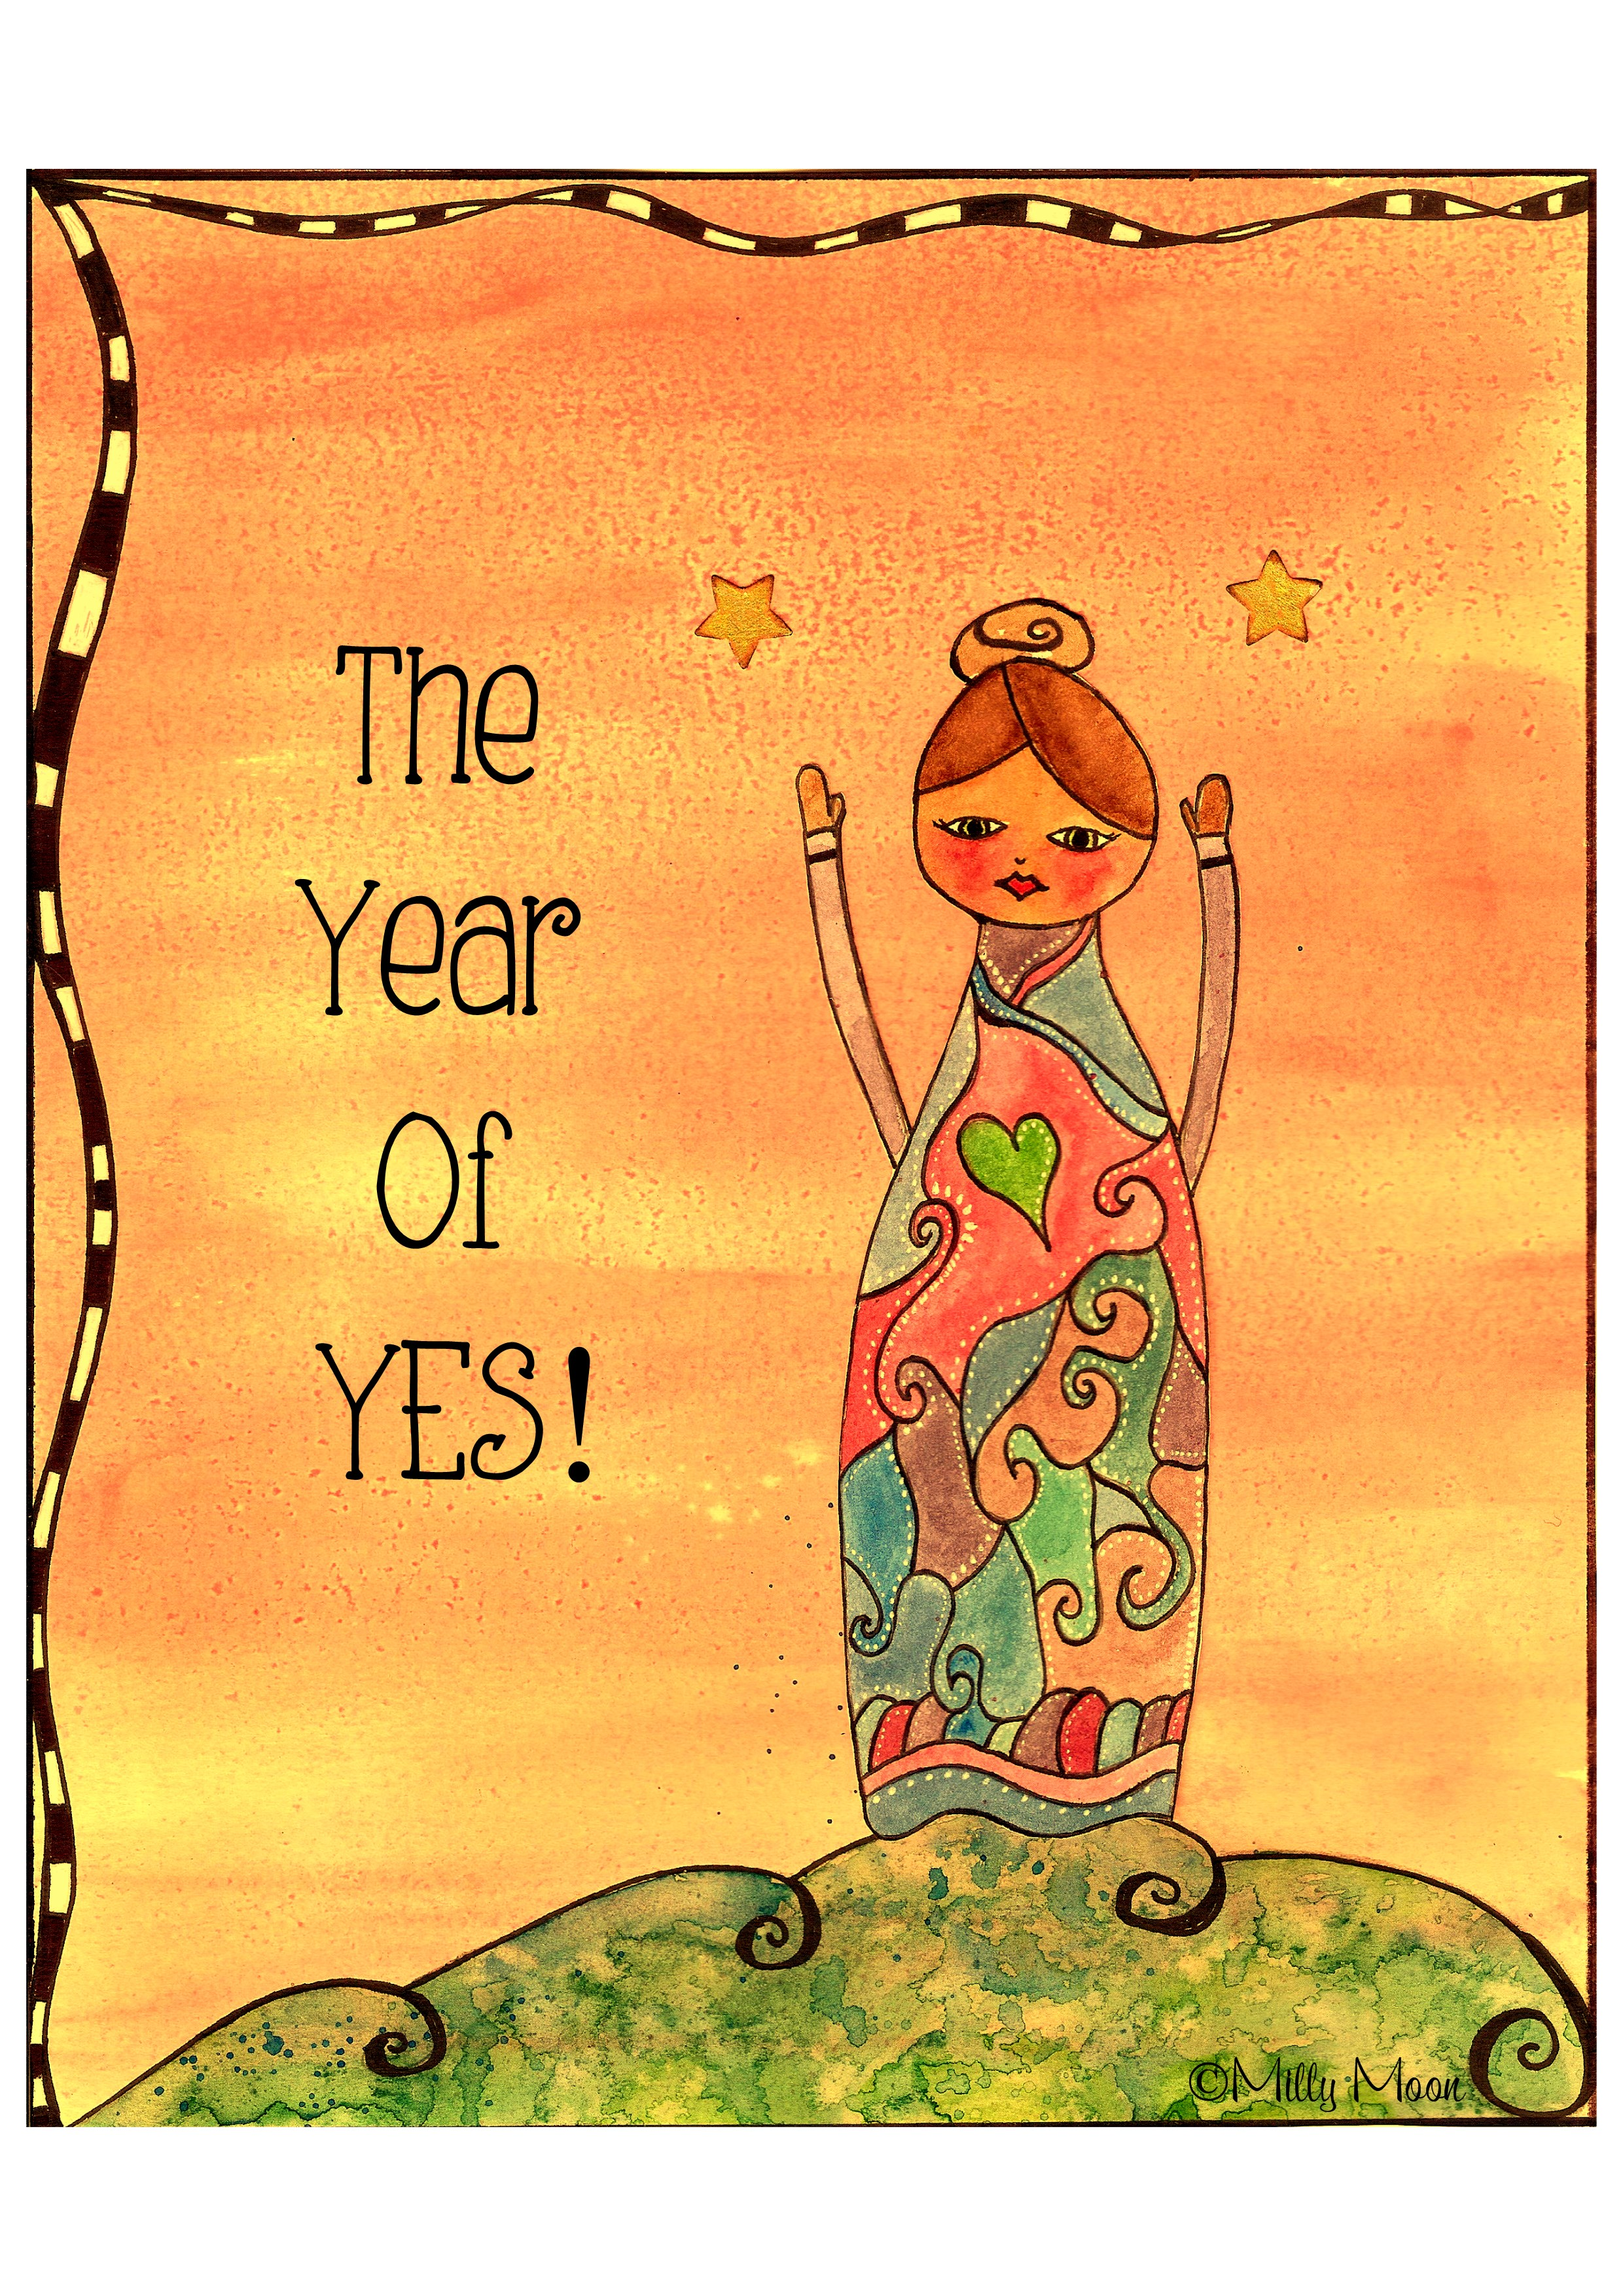 http://traceesioux.com/yearofyes/